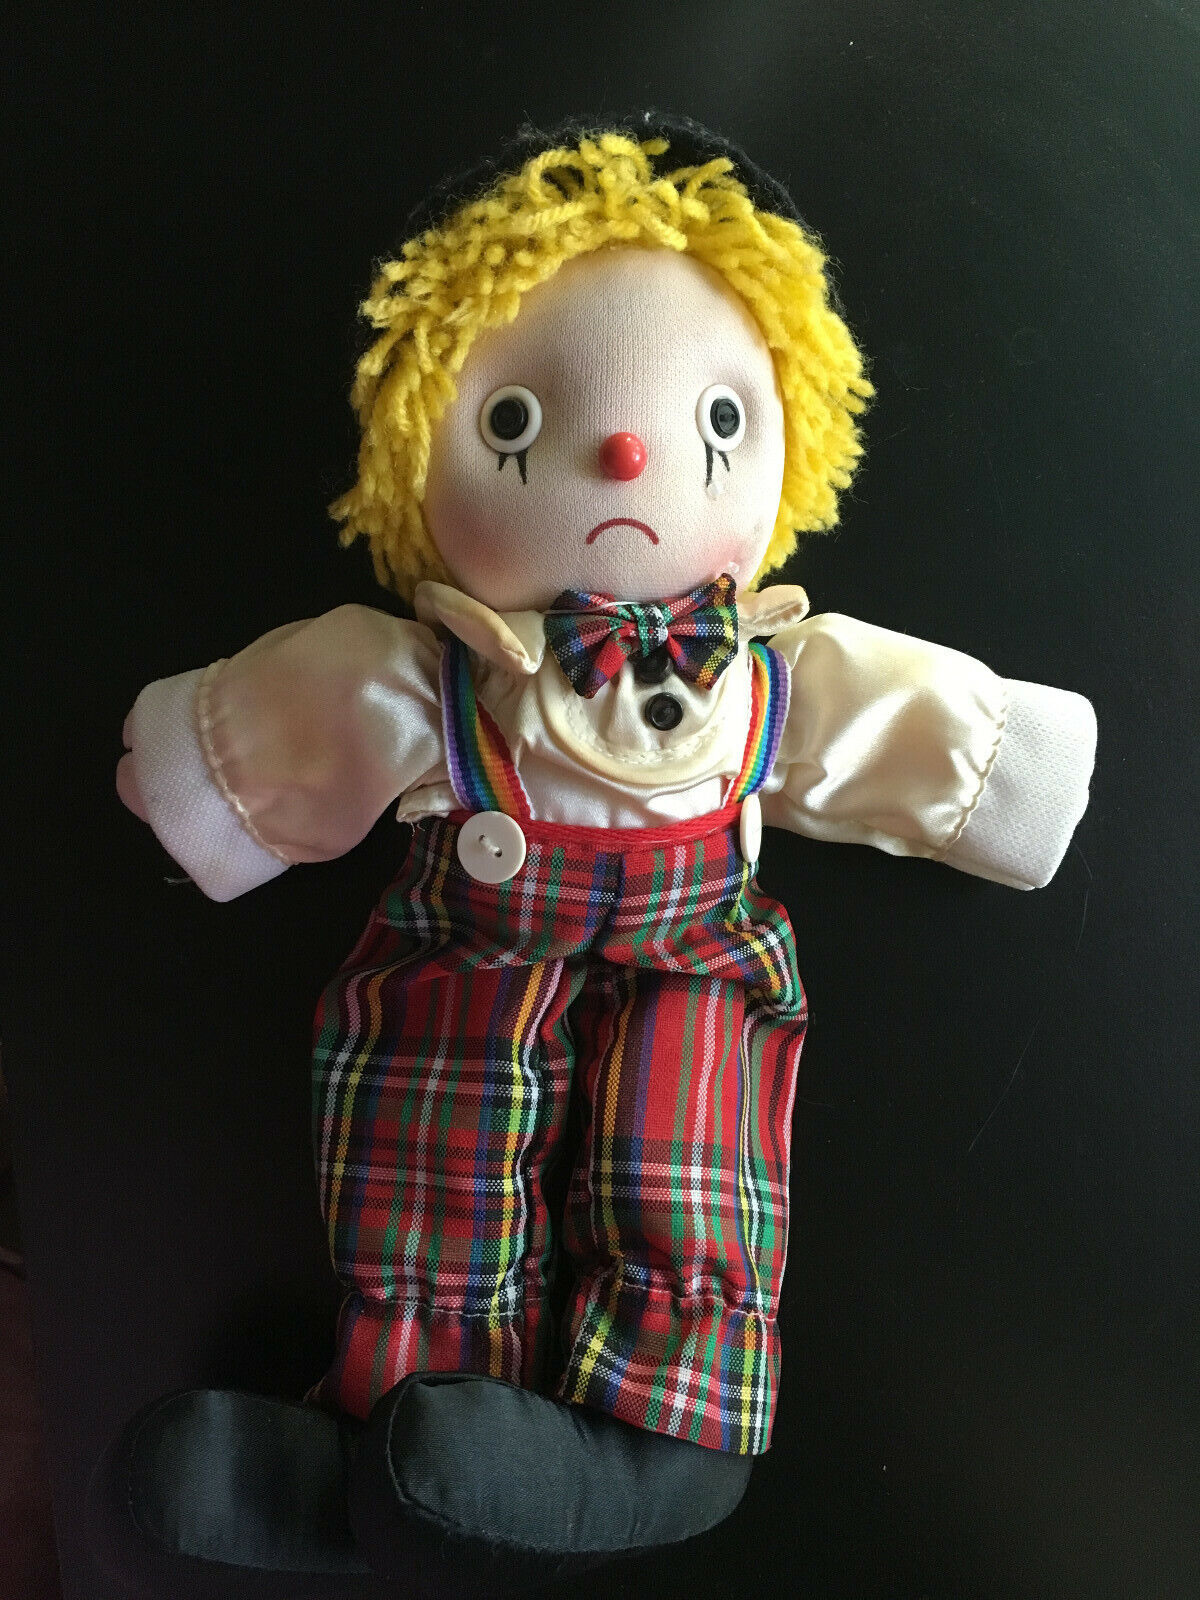 C. Ashton hobo doll by Enesco (1978)